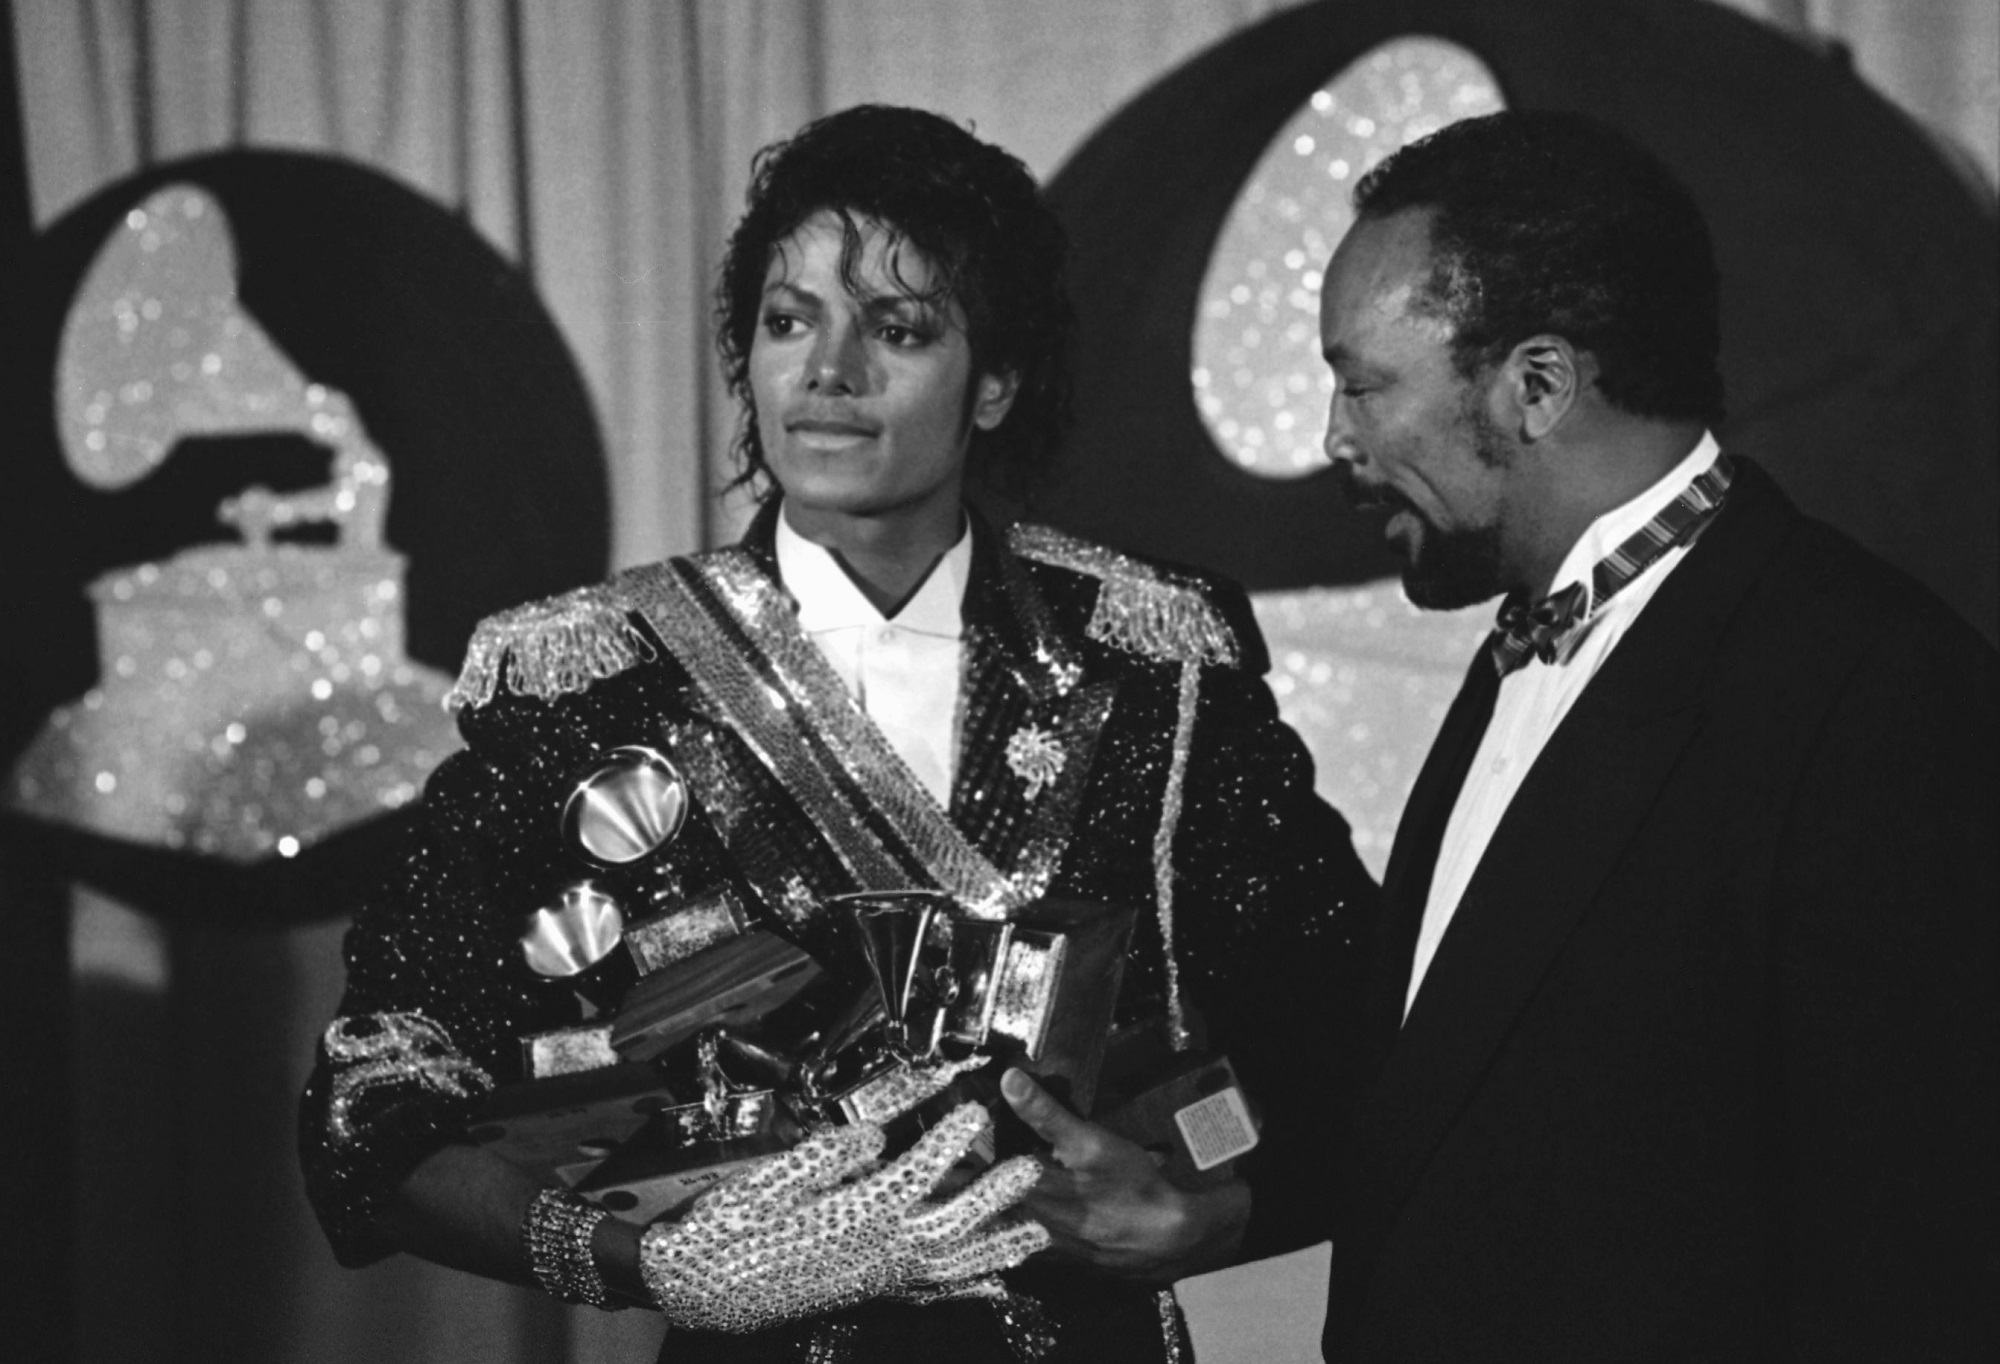 Backstage The 1984 Grammy Awards